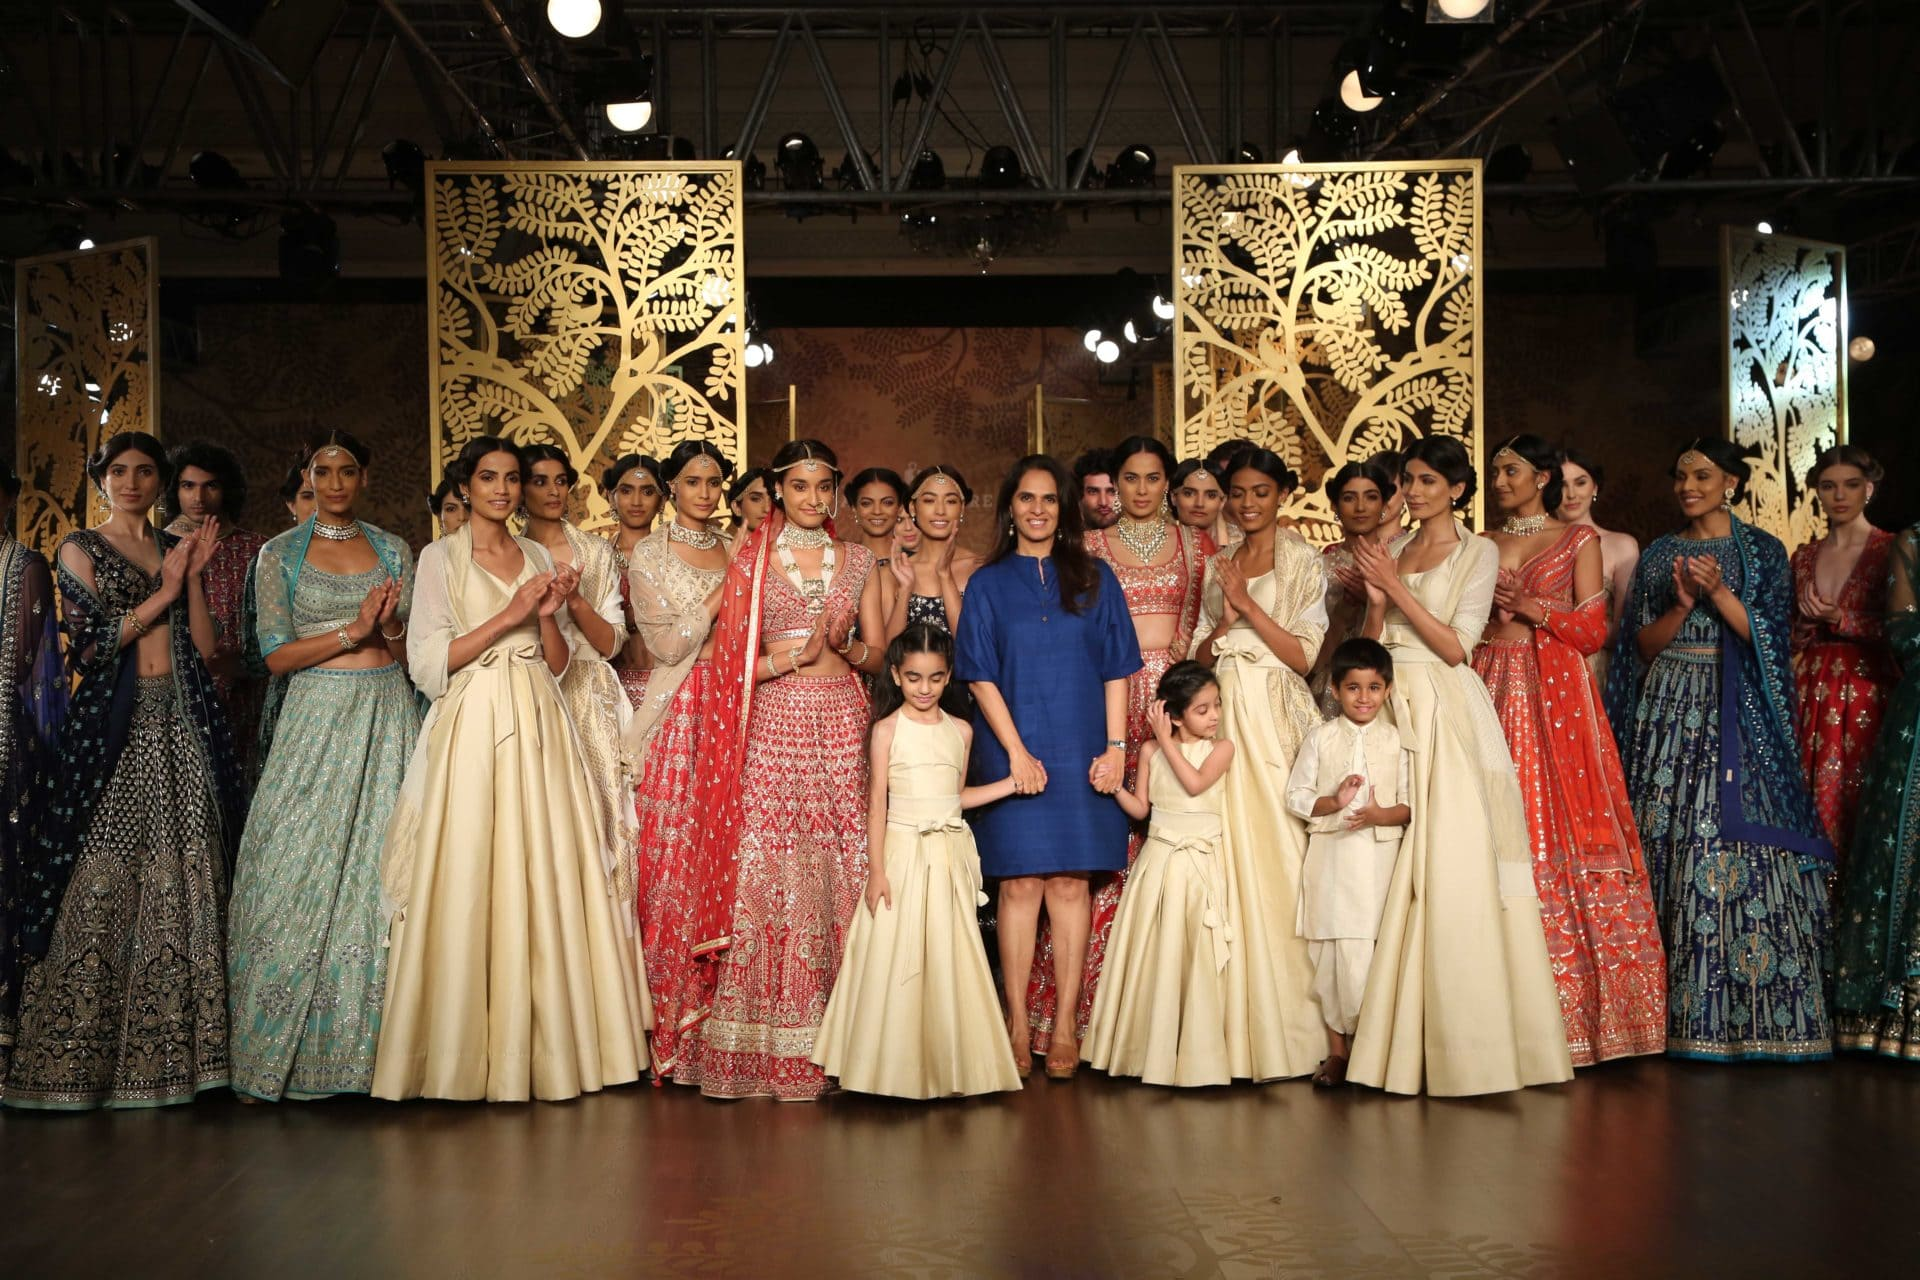 Anita Dongre at the finale of her couture collection 'Tree of love''. Image: Courtesy Anita Dongre